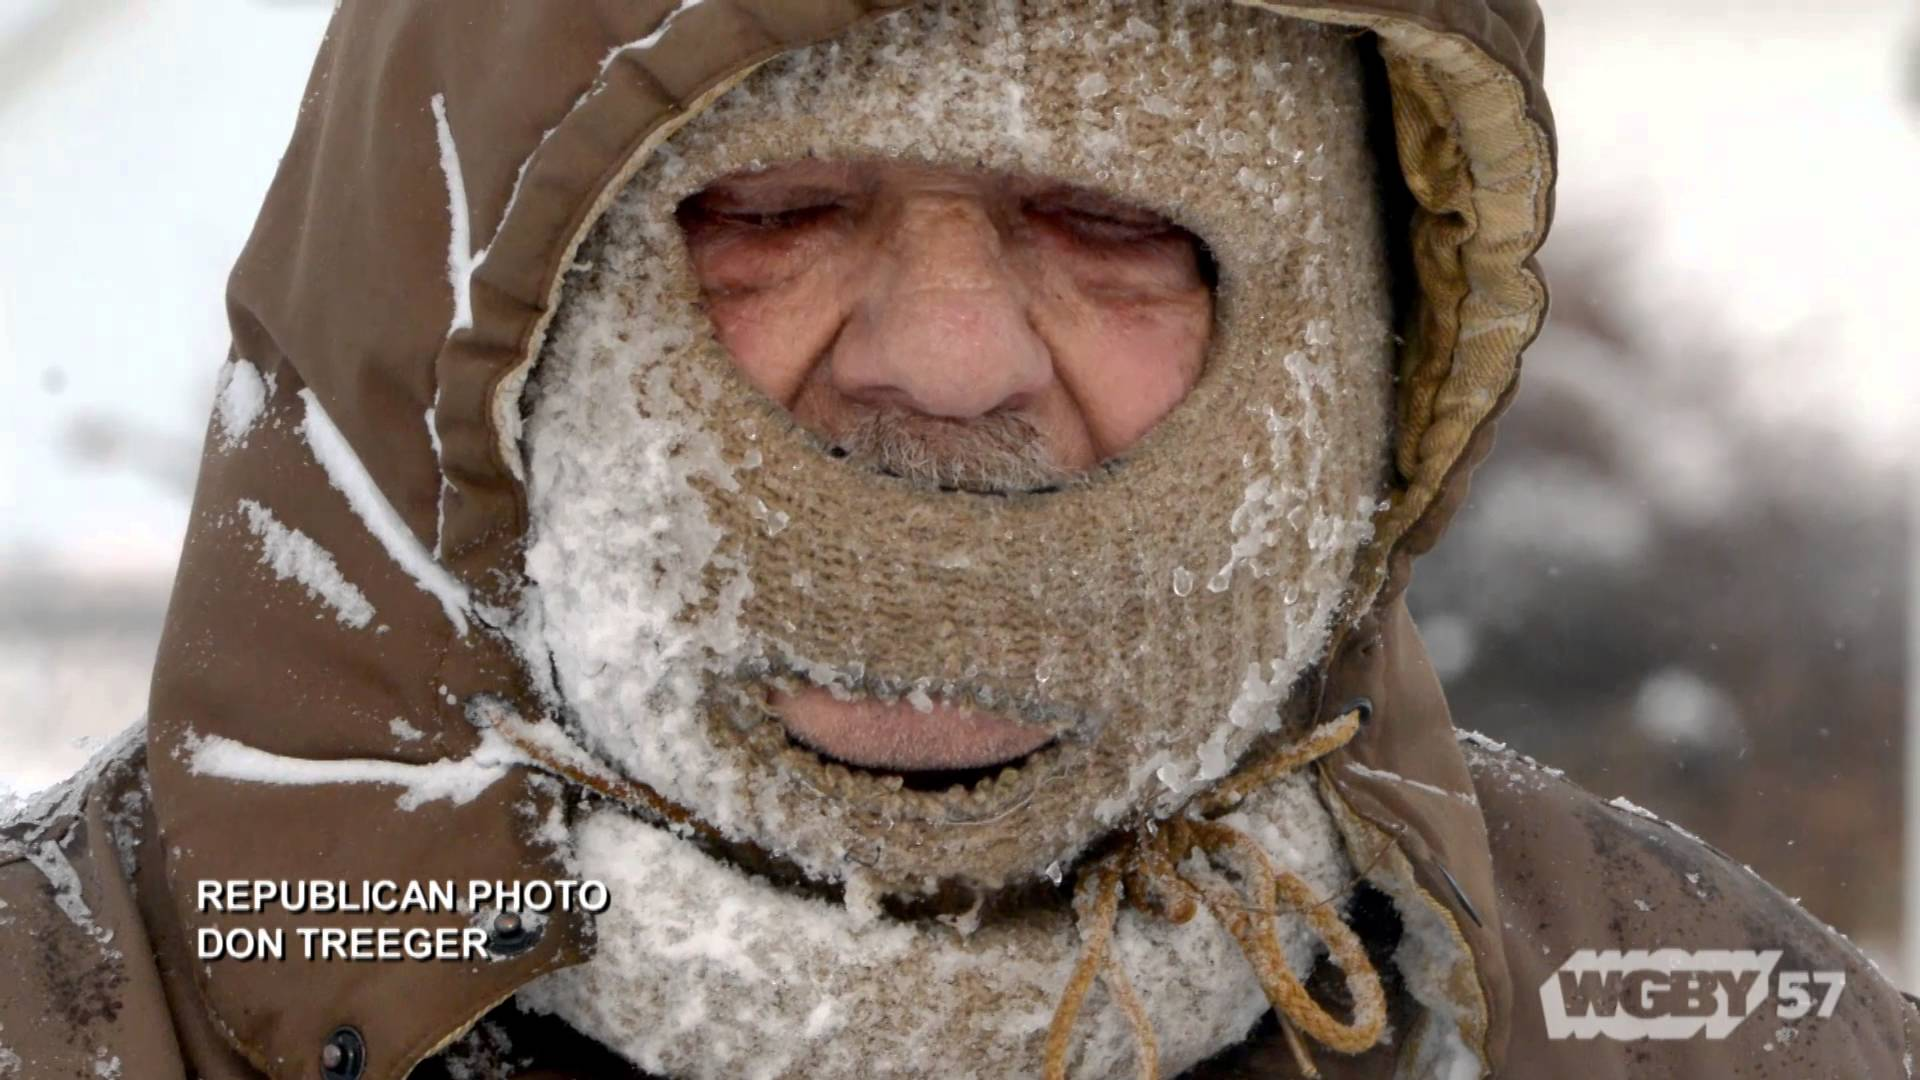 Through the Lens with the Republican Photographers: Snowy Images